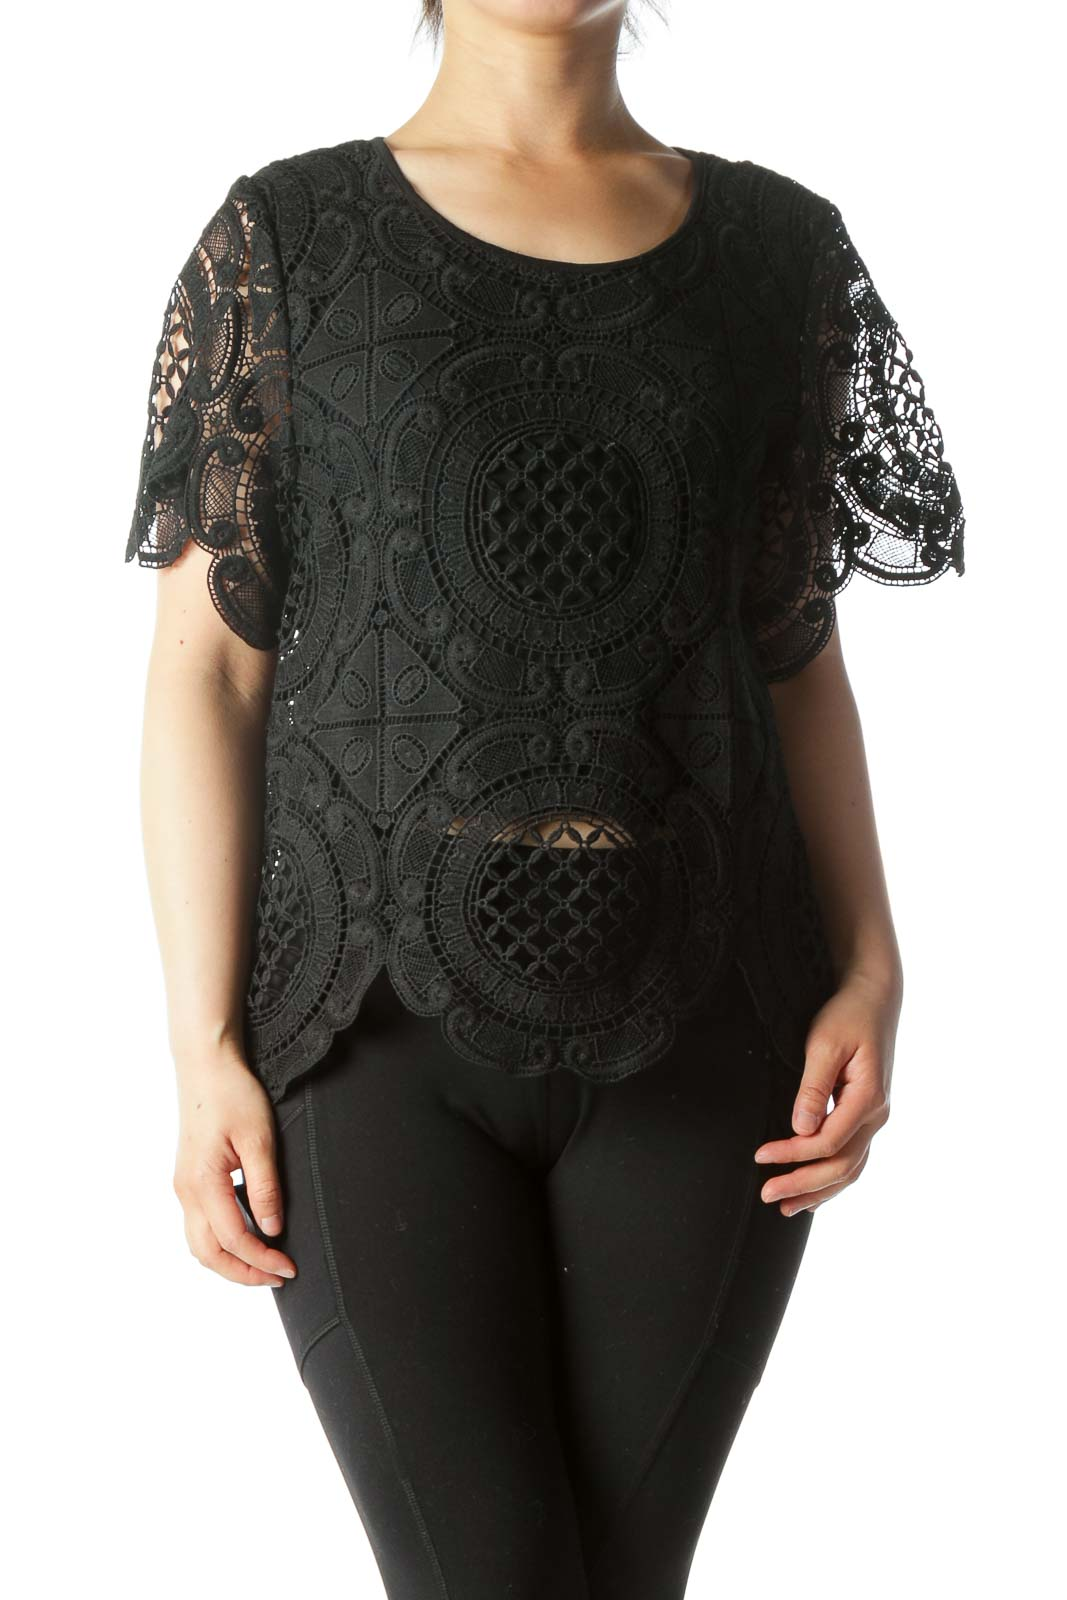 Black Knit Short-Sleeve See-Through Design Top Front